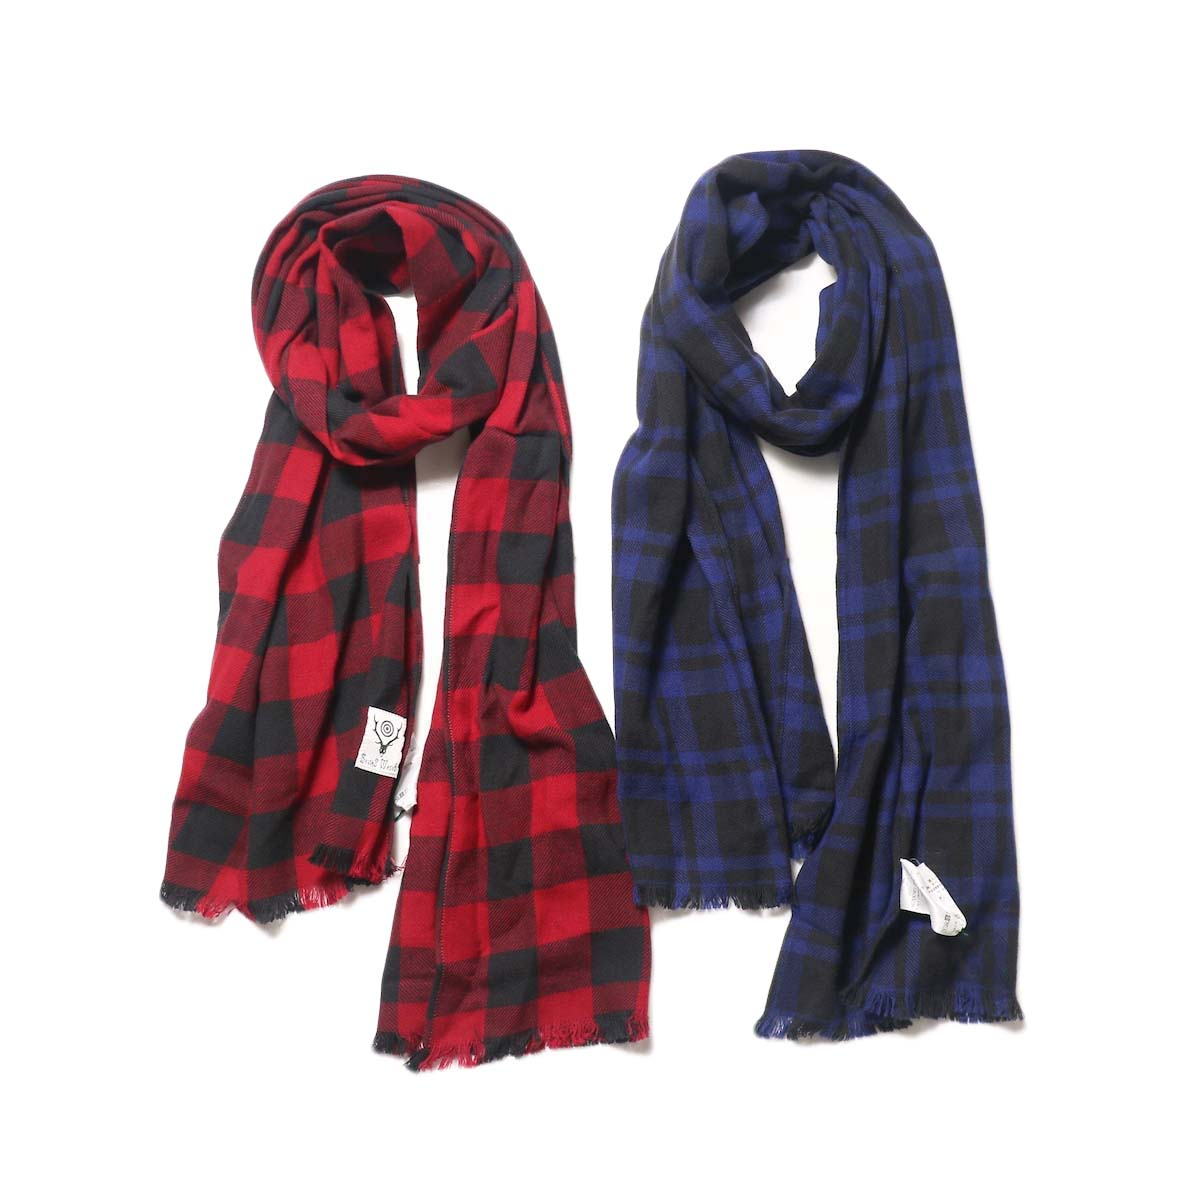 South2 West8 / Stole - Plaid Twill